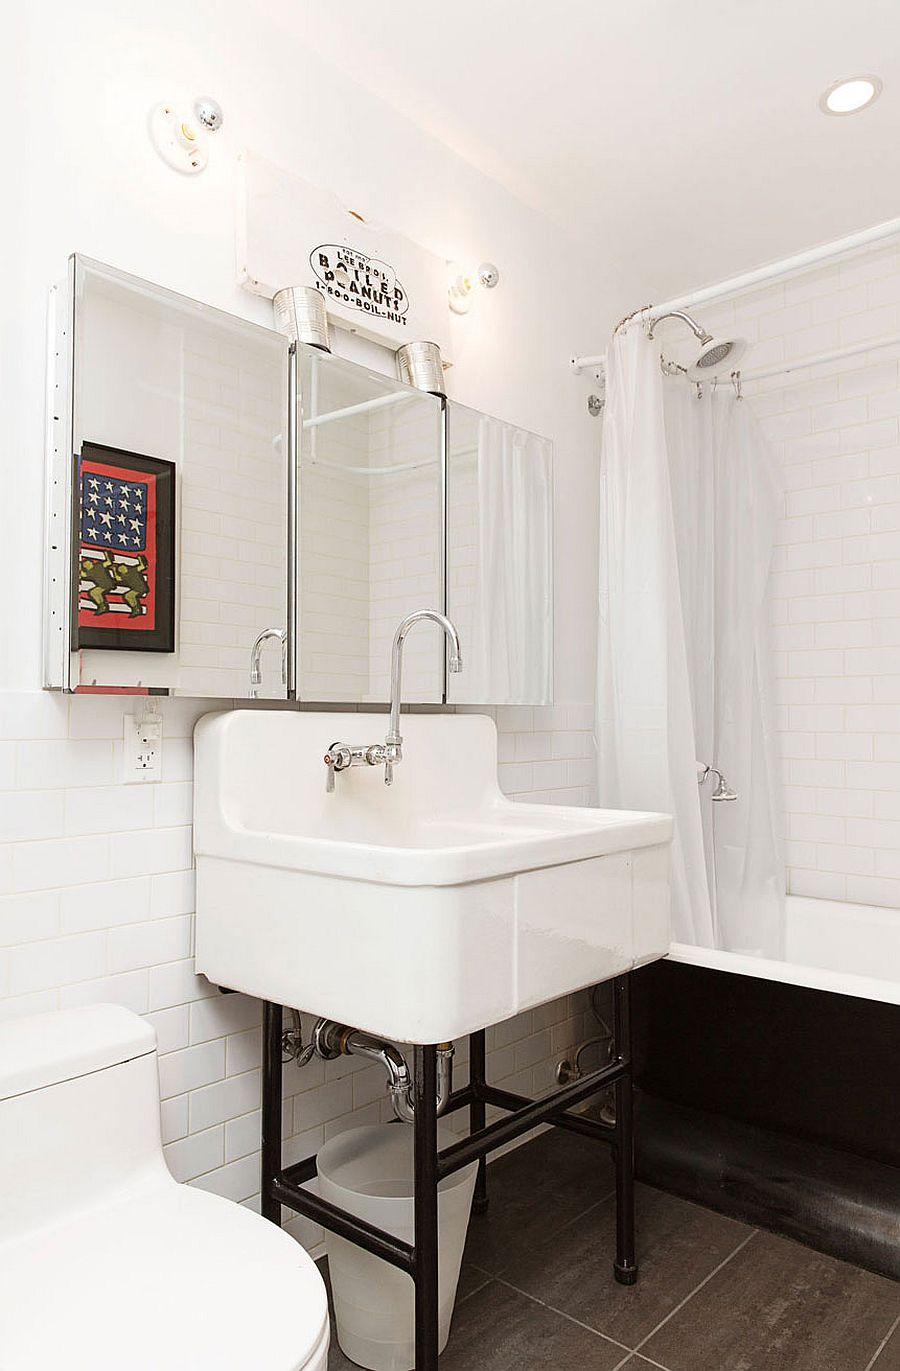 Industrial bathroom in white with vintage bathtub and shower area